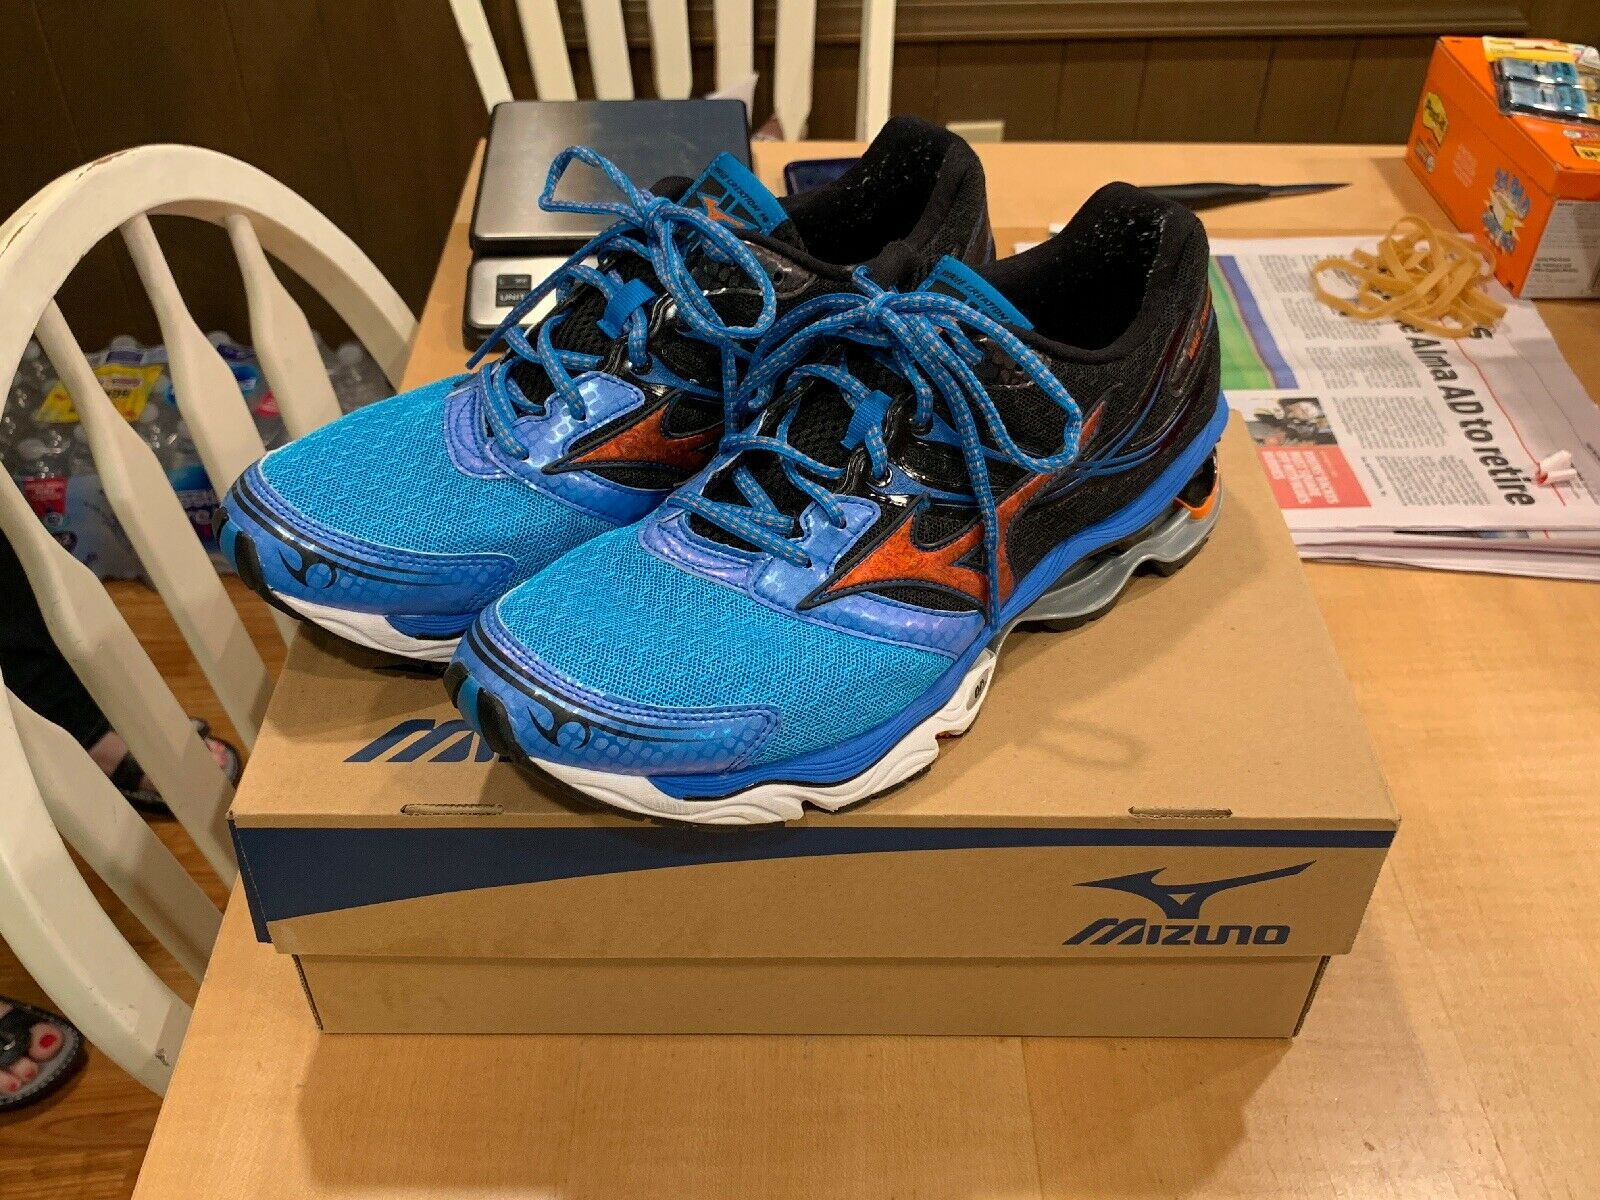 Mens Mizuno Wave Creation 14 SIZE 10 US Running shoes BARELY USED